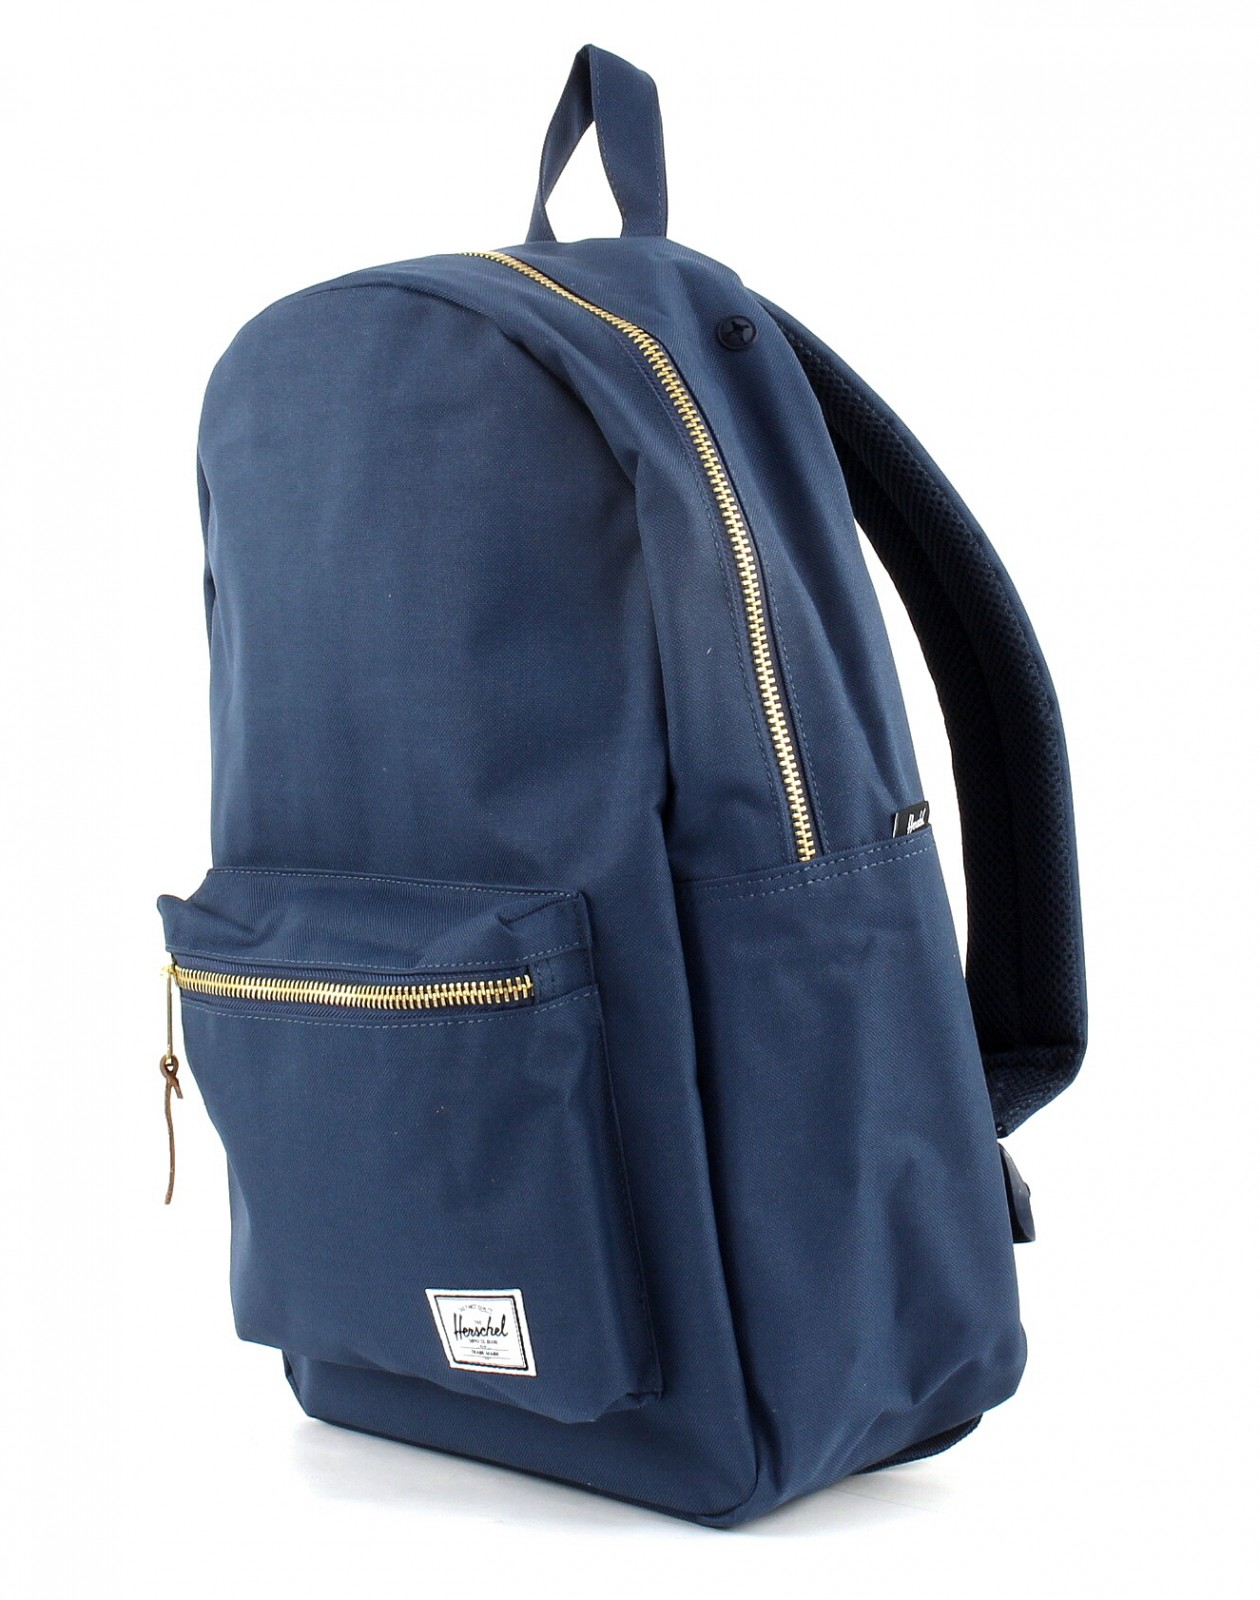 10ec0a1a6b8 ... To CloseHerschel Settlement Backpack Navy   69